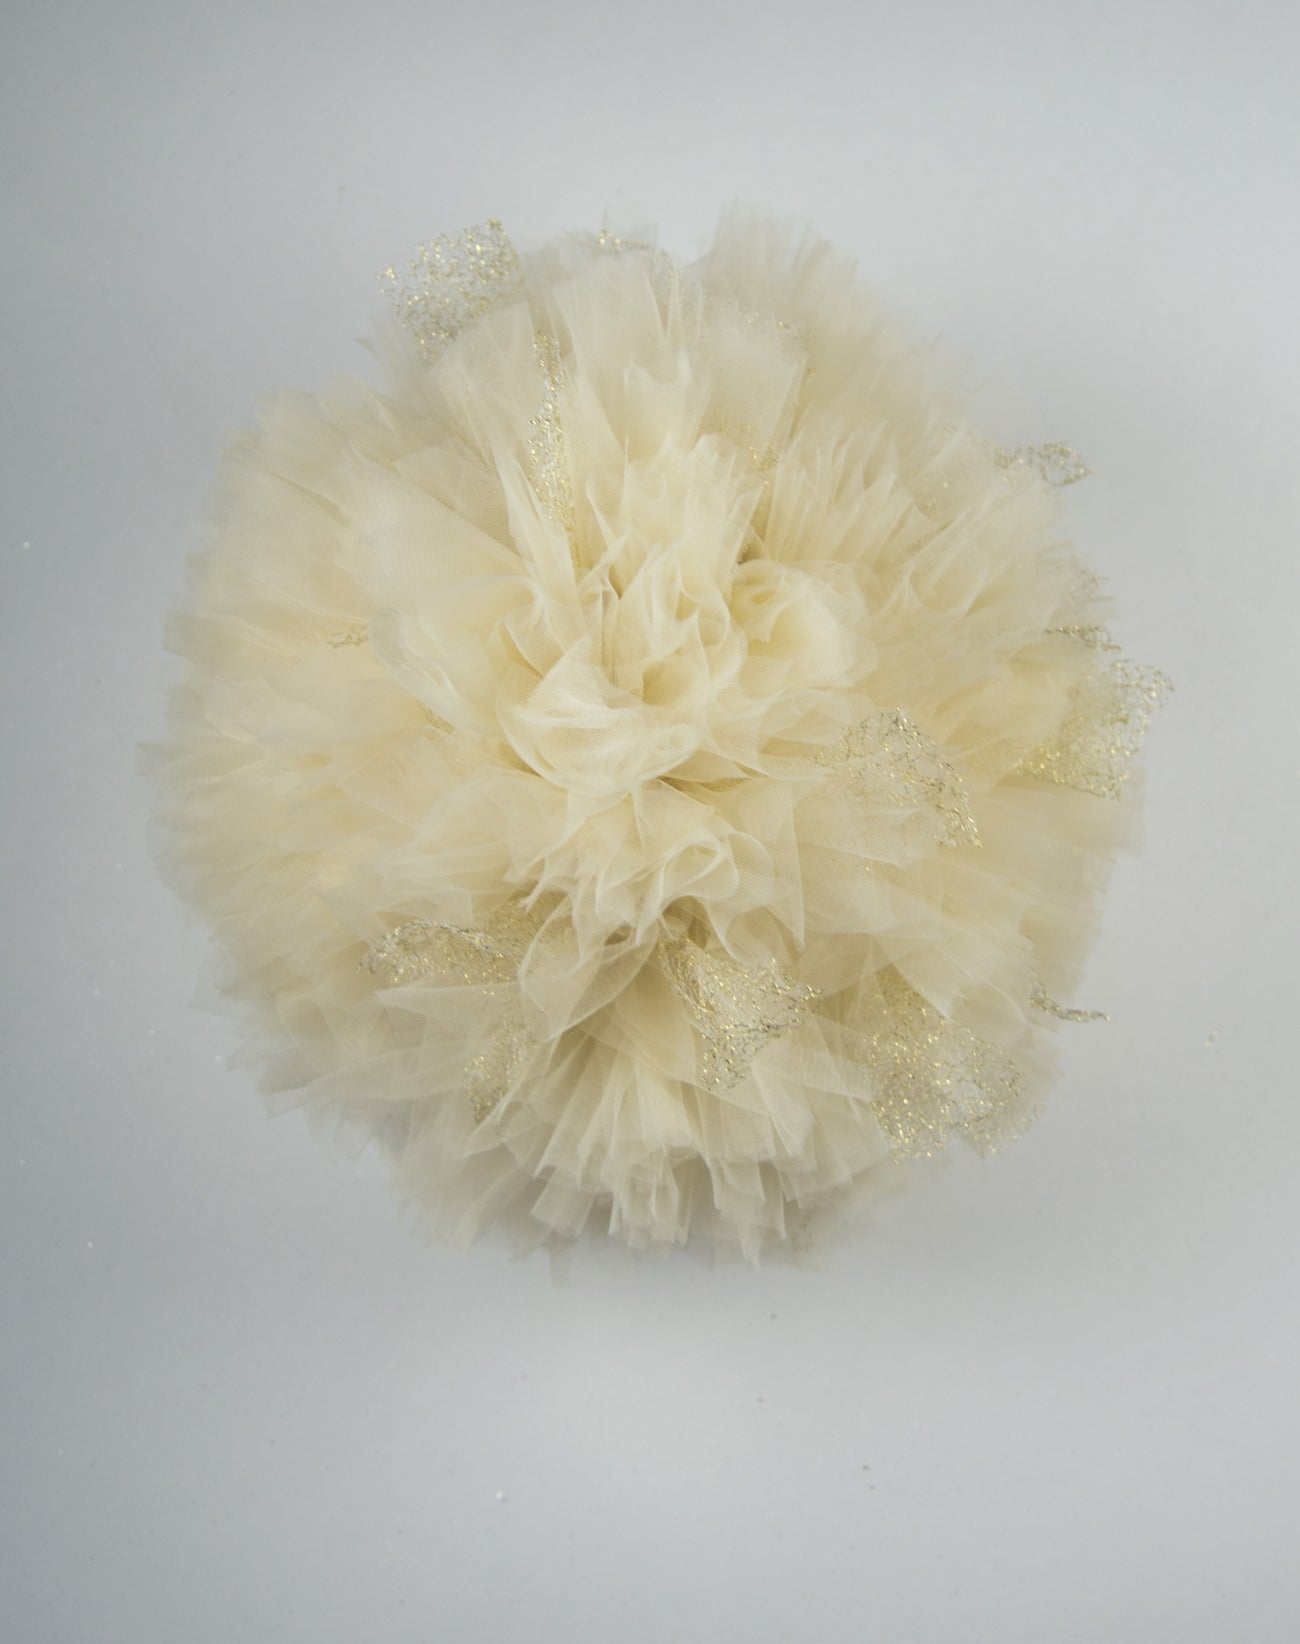 Tulle pom pom - Cream and Gold